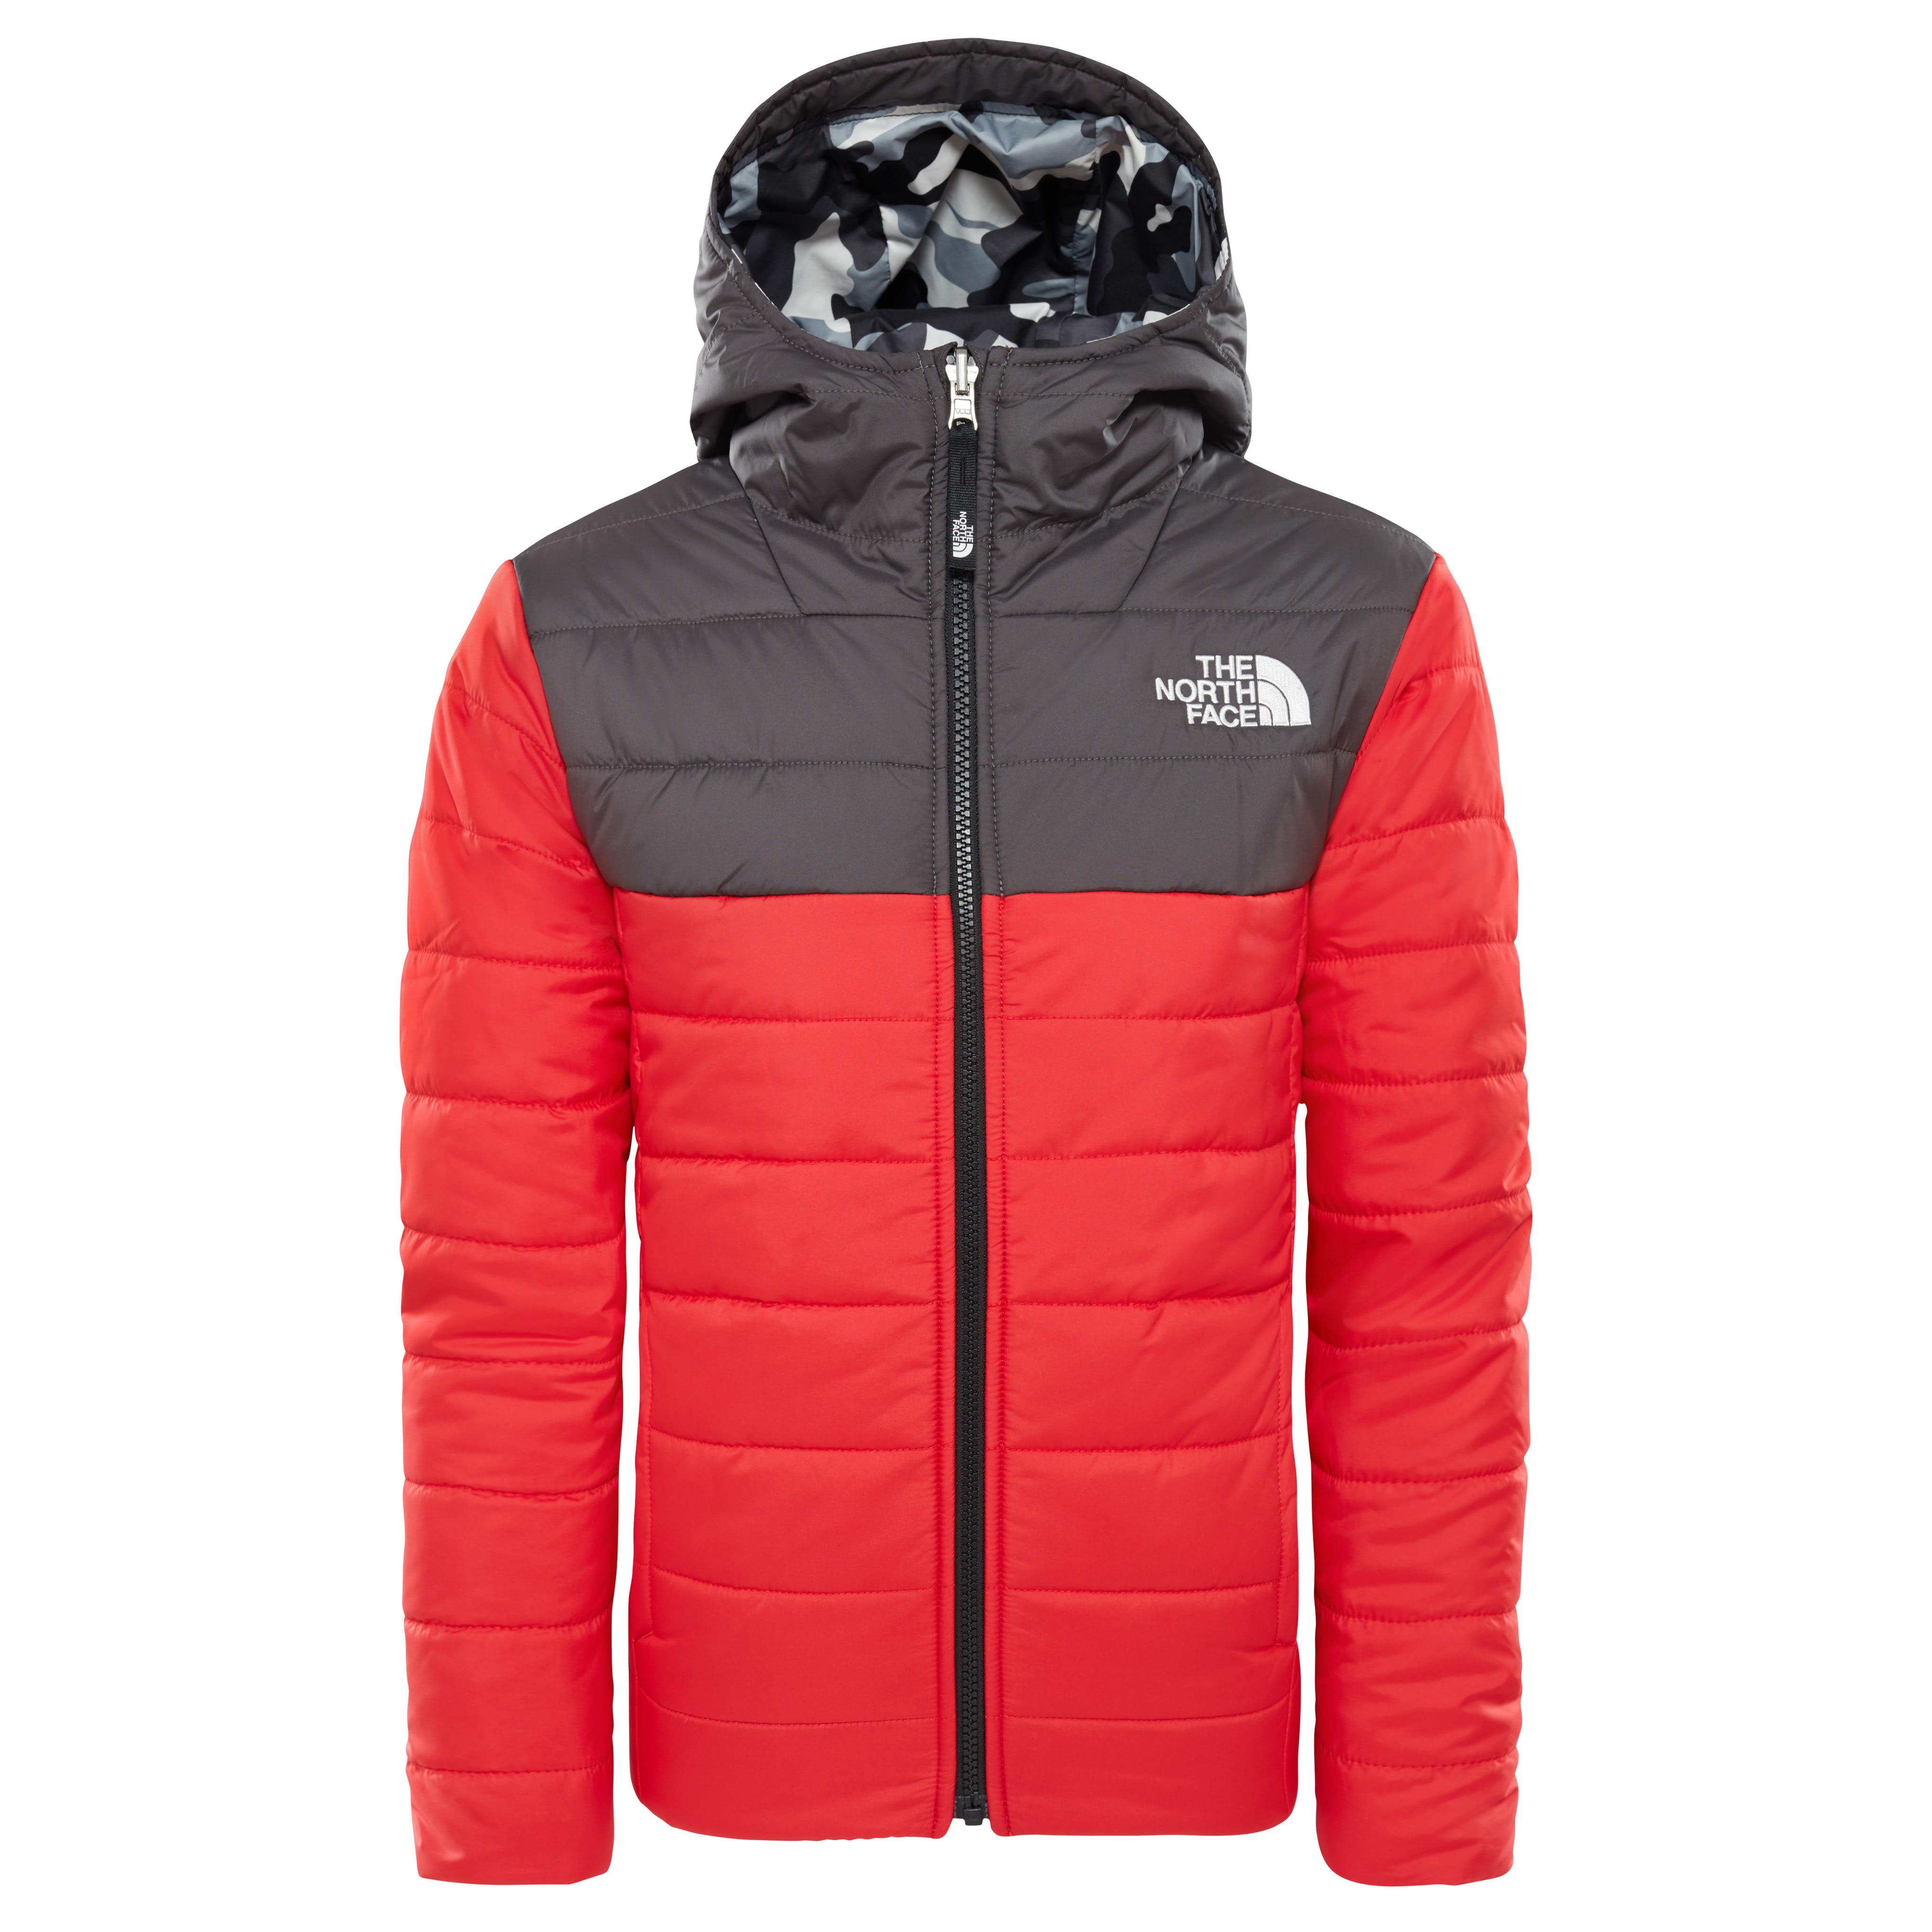 Buy The North Face Boy s Reversible Perrito Jacket from Outnorth 371cd9a292c